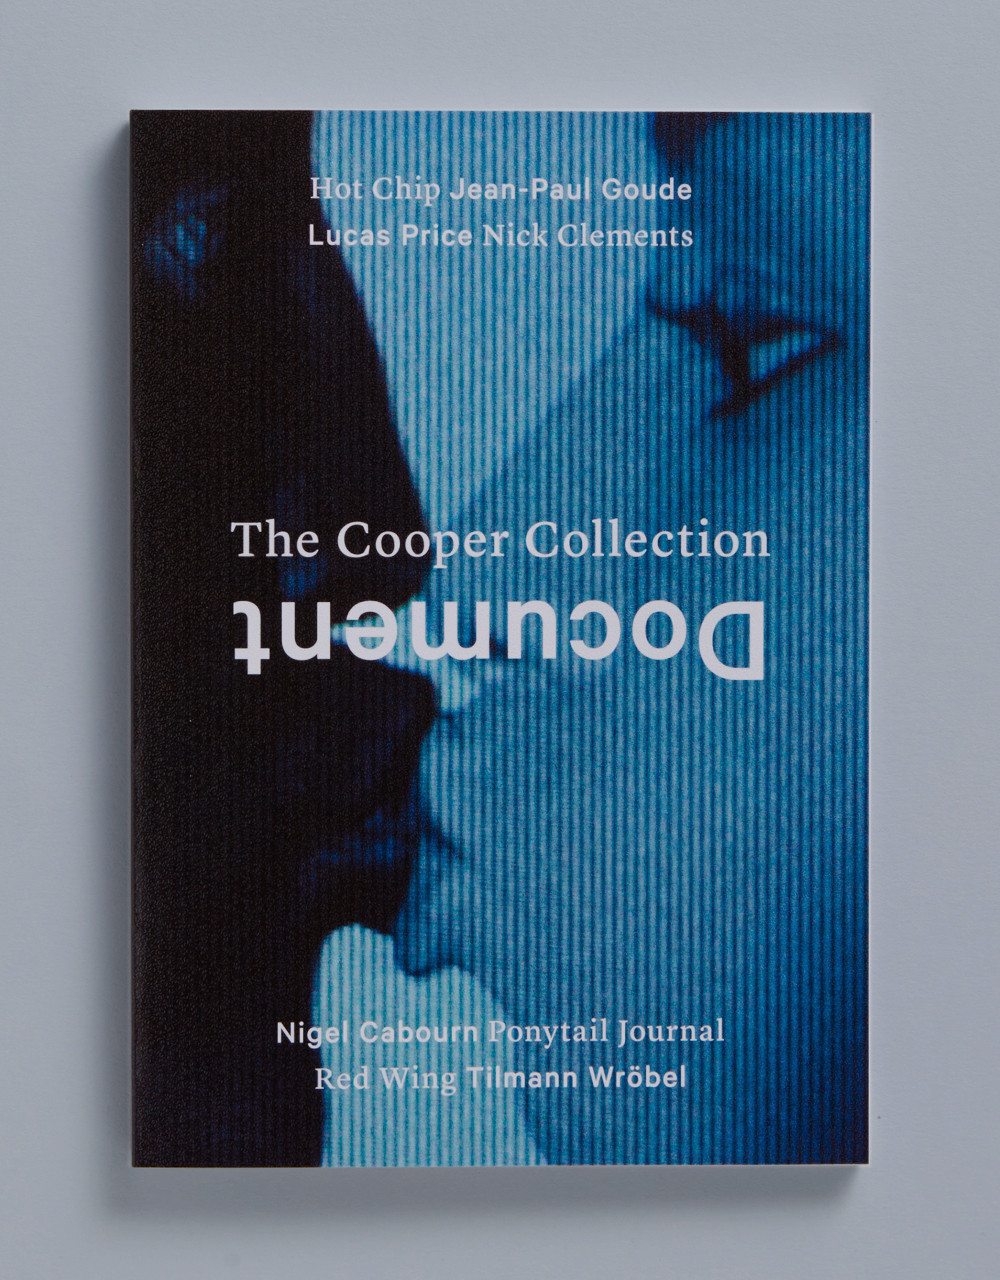 The Cooper Collection